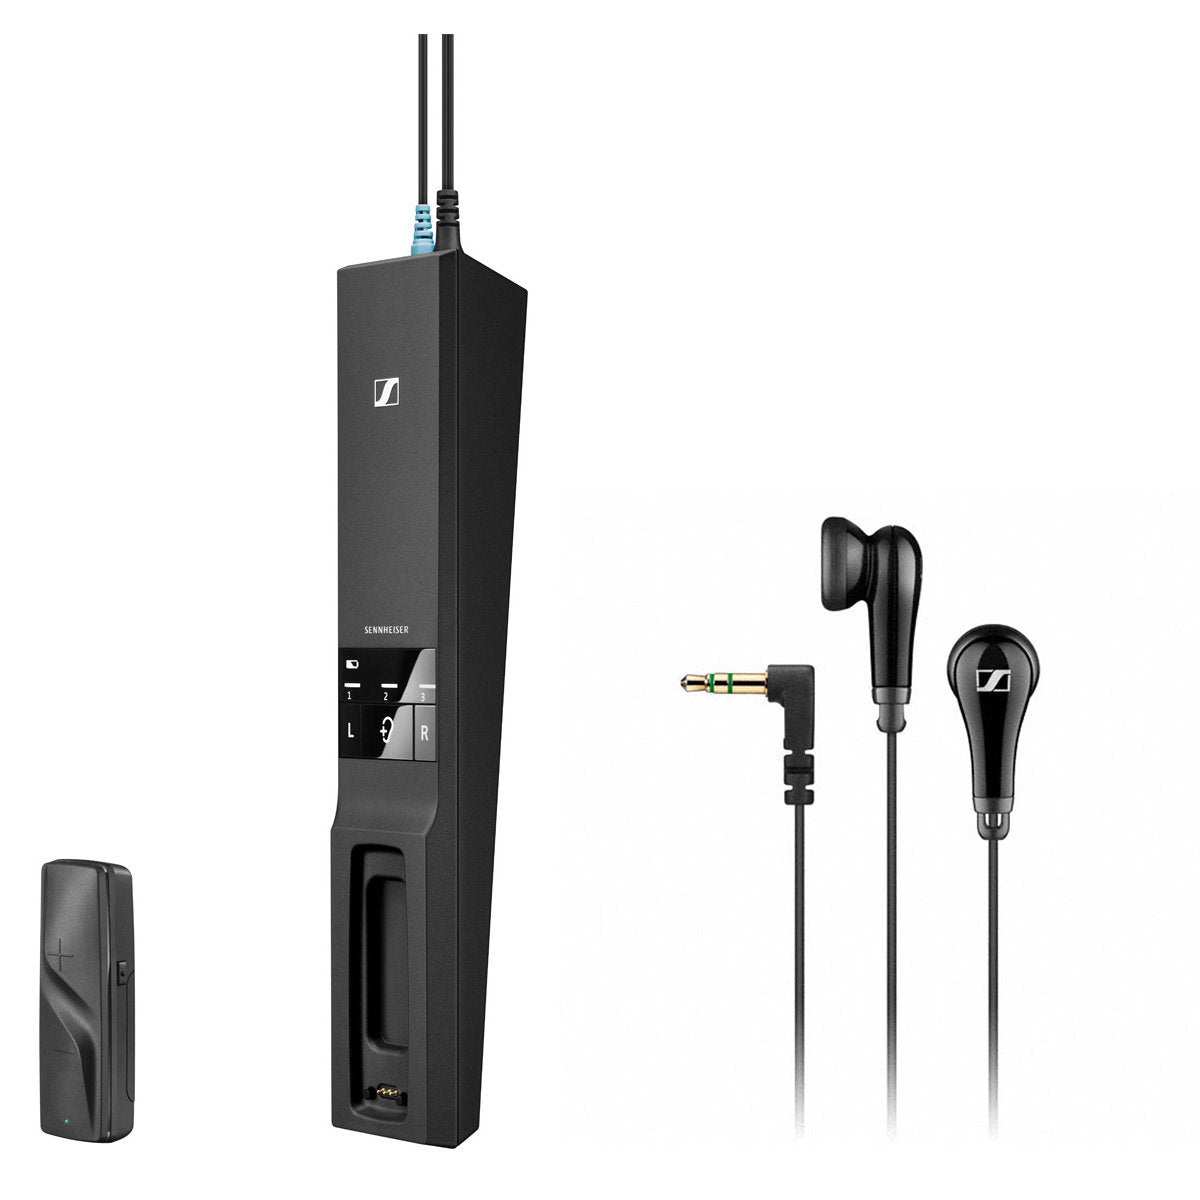 Sennheiser Flex 5000 Digital Wireless Audio Transmitter and Receiver with MX 475 Earphones